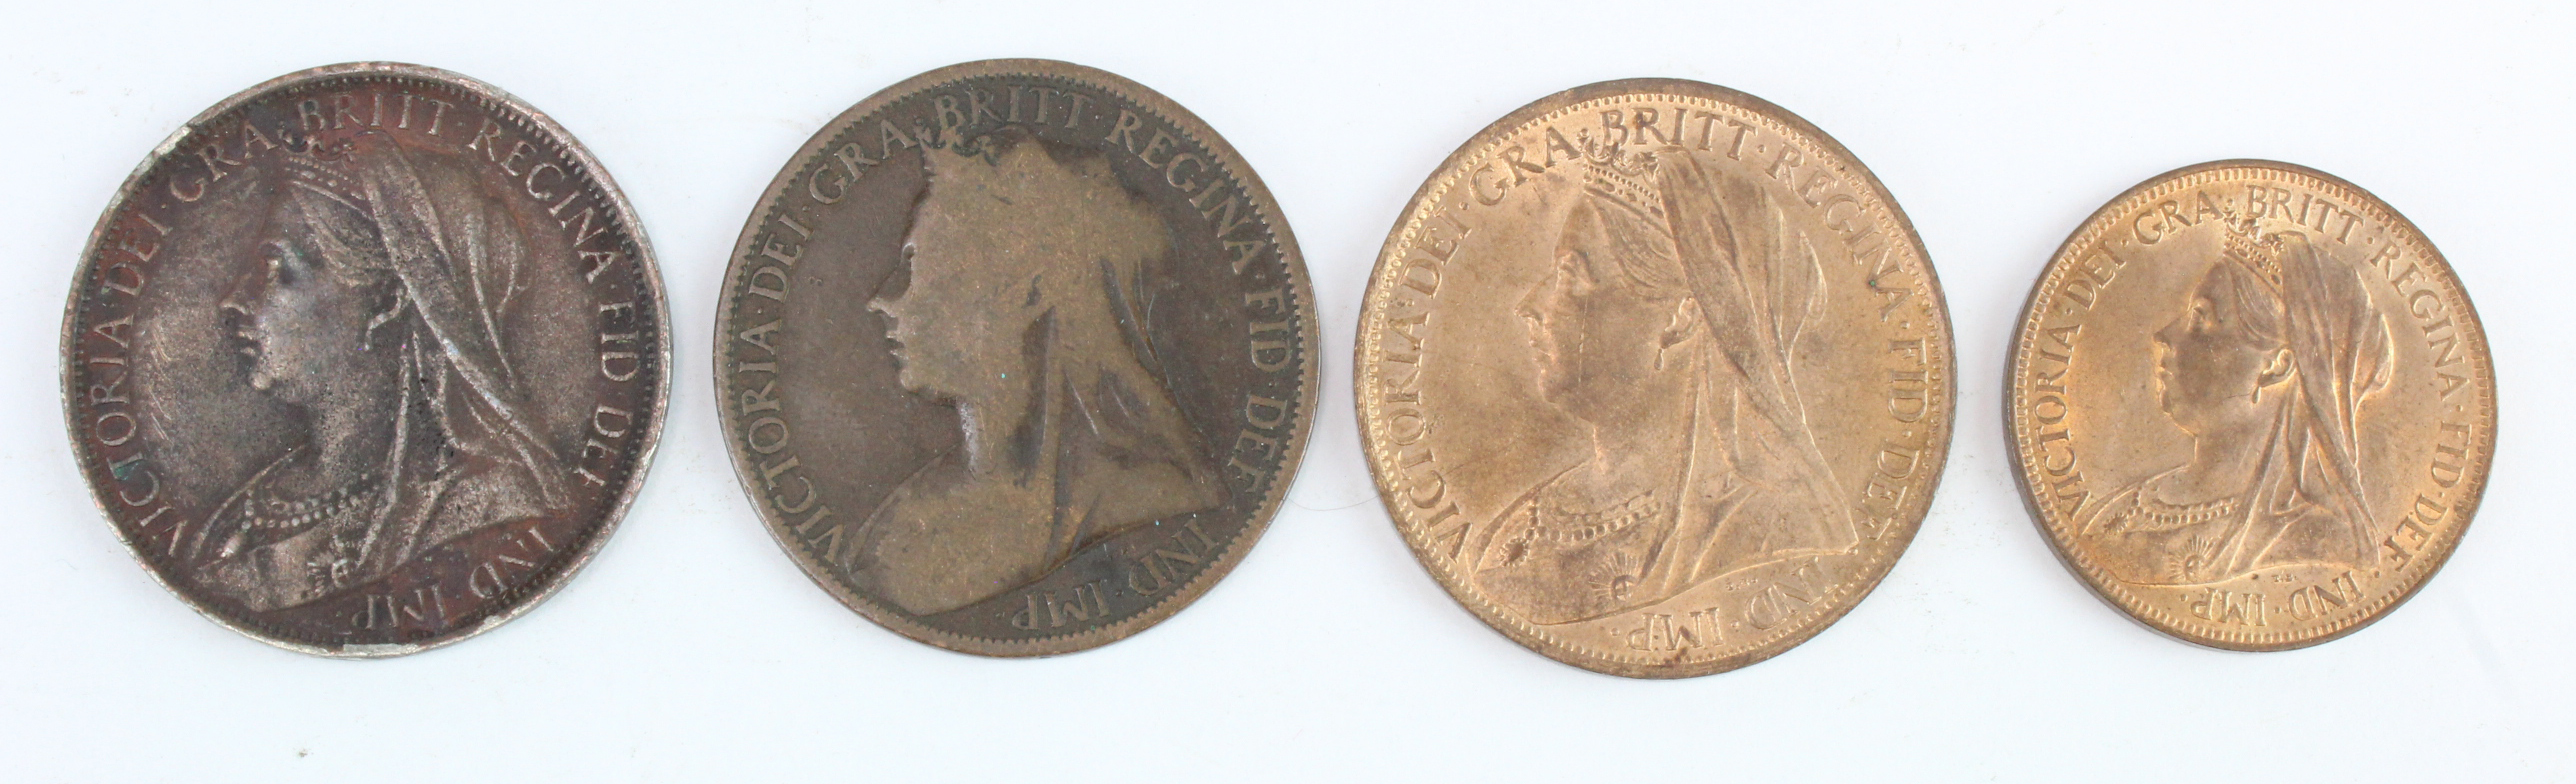 """GB Bronze (4) Queen Victoria veiled head: 1895 """"2mm"""" Fair, Penny and Halfpenny 1901 UNC with lustre,"""